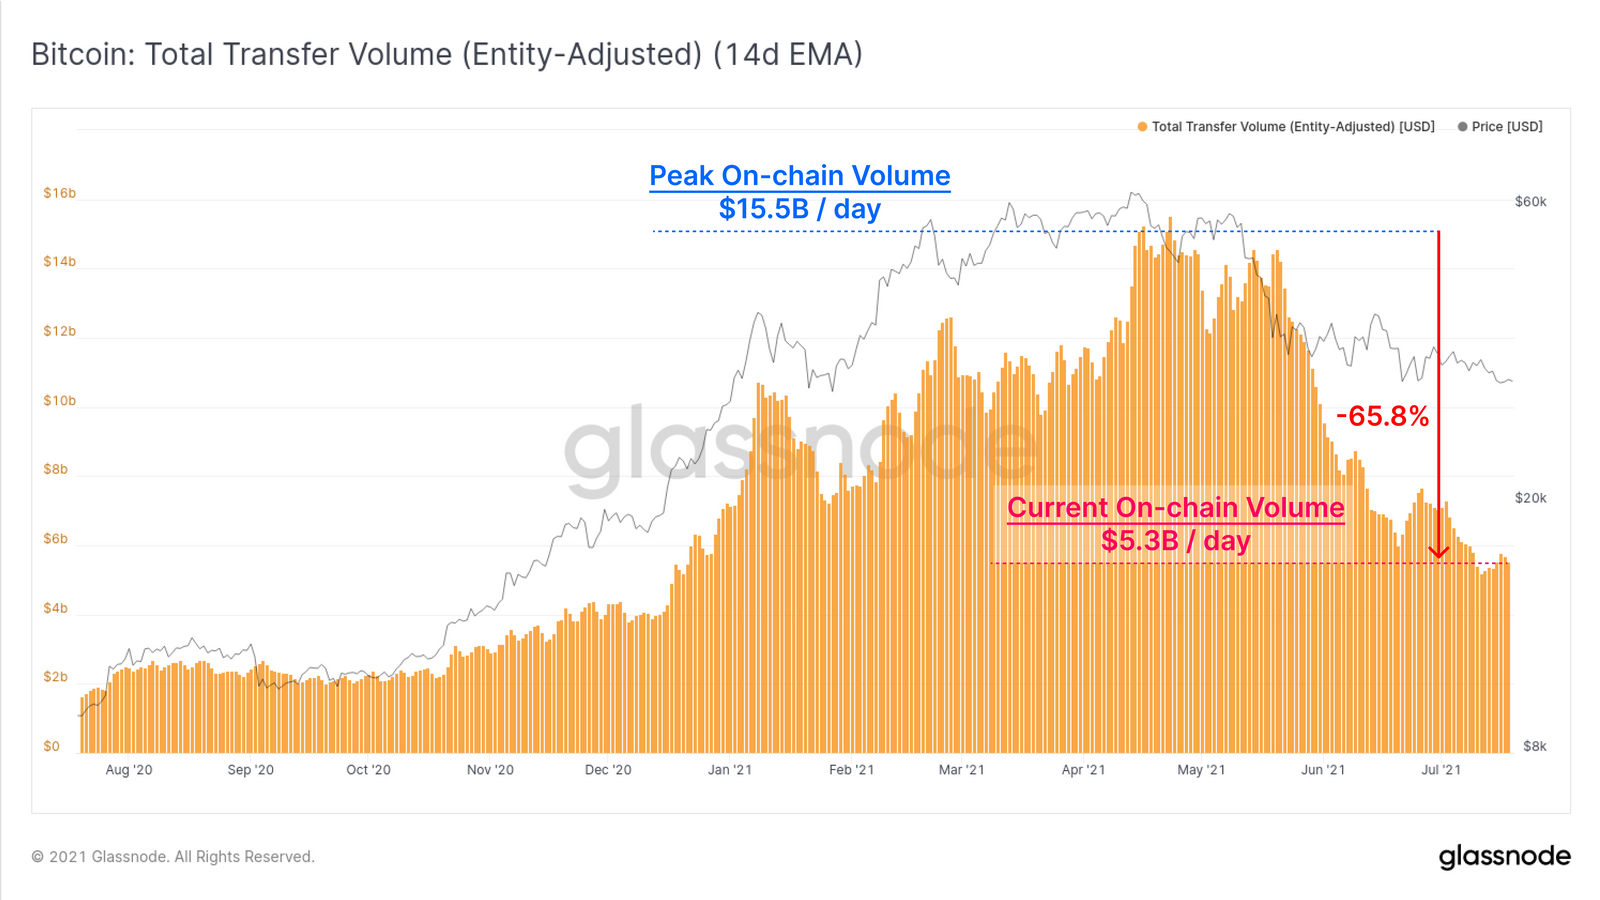 Orange chart showing monthly amounts in dollars that Bitcoin has settled on-chain.